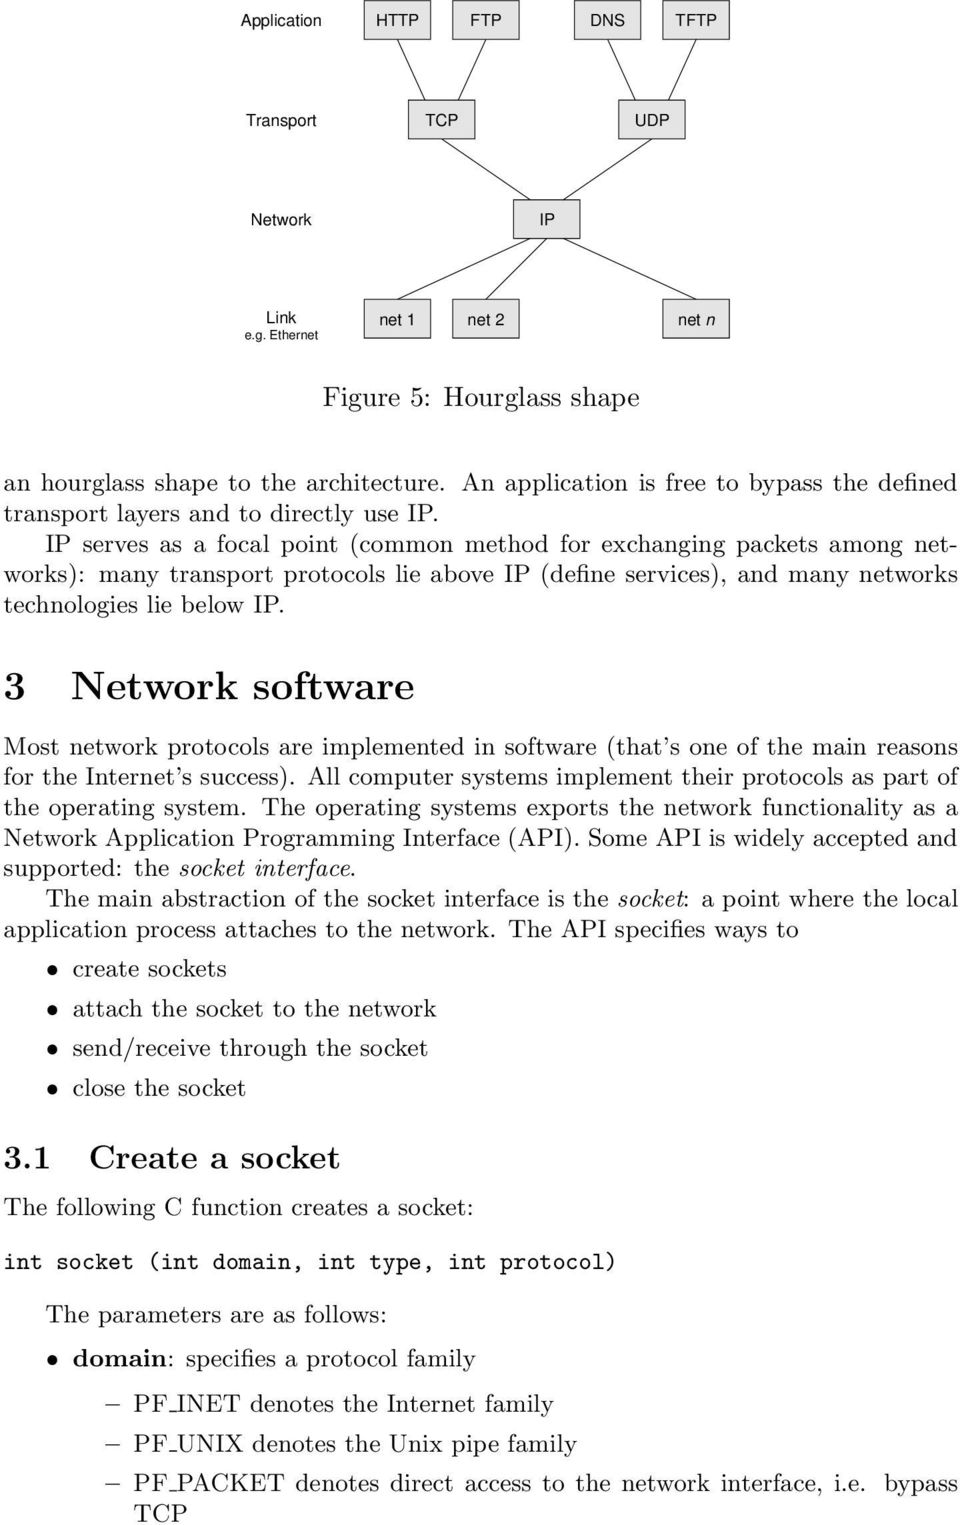 IP serves as a focal point (common method for exchanging s among networks): many transport protocols lie above IP (define services), and many networks technologies lie below IP.